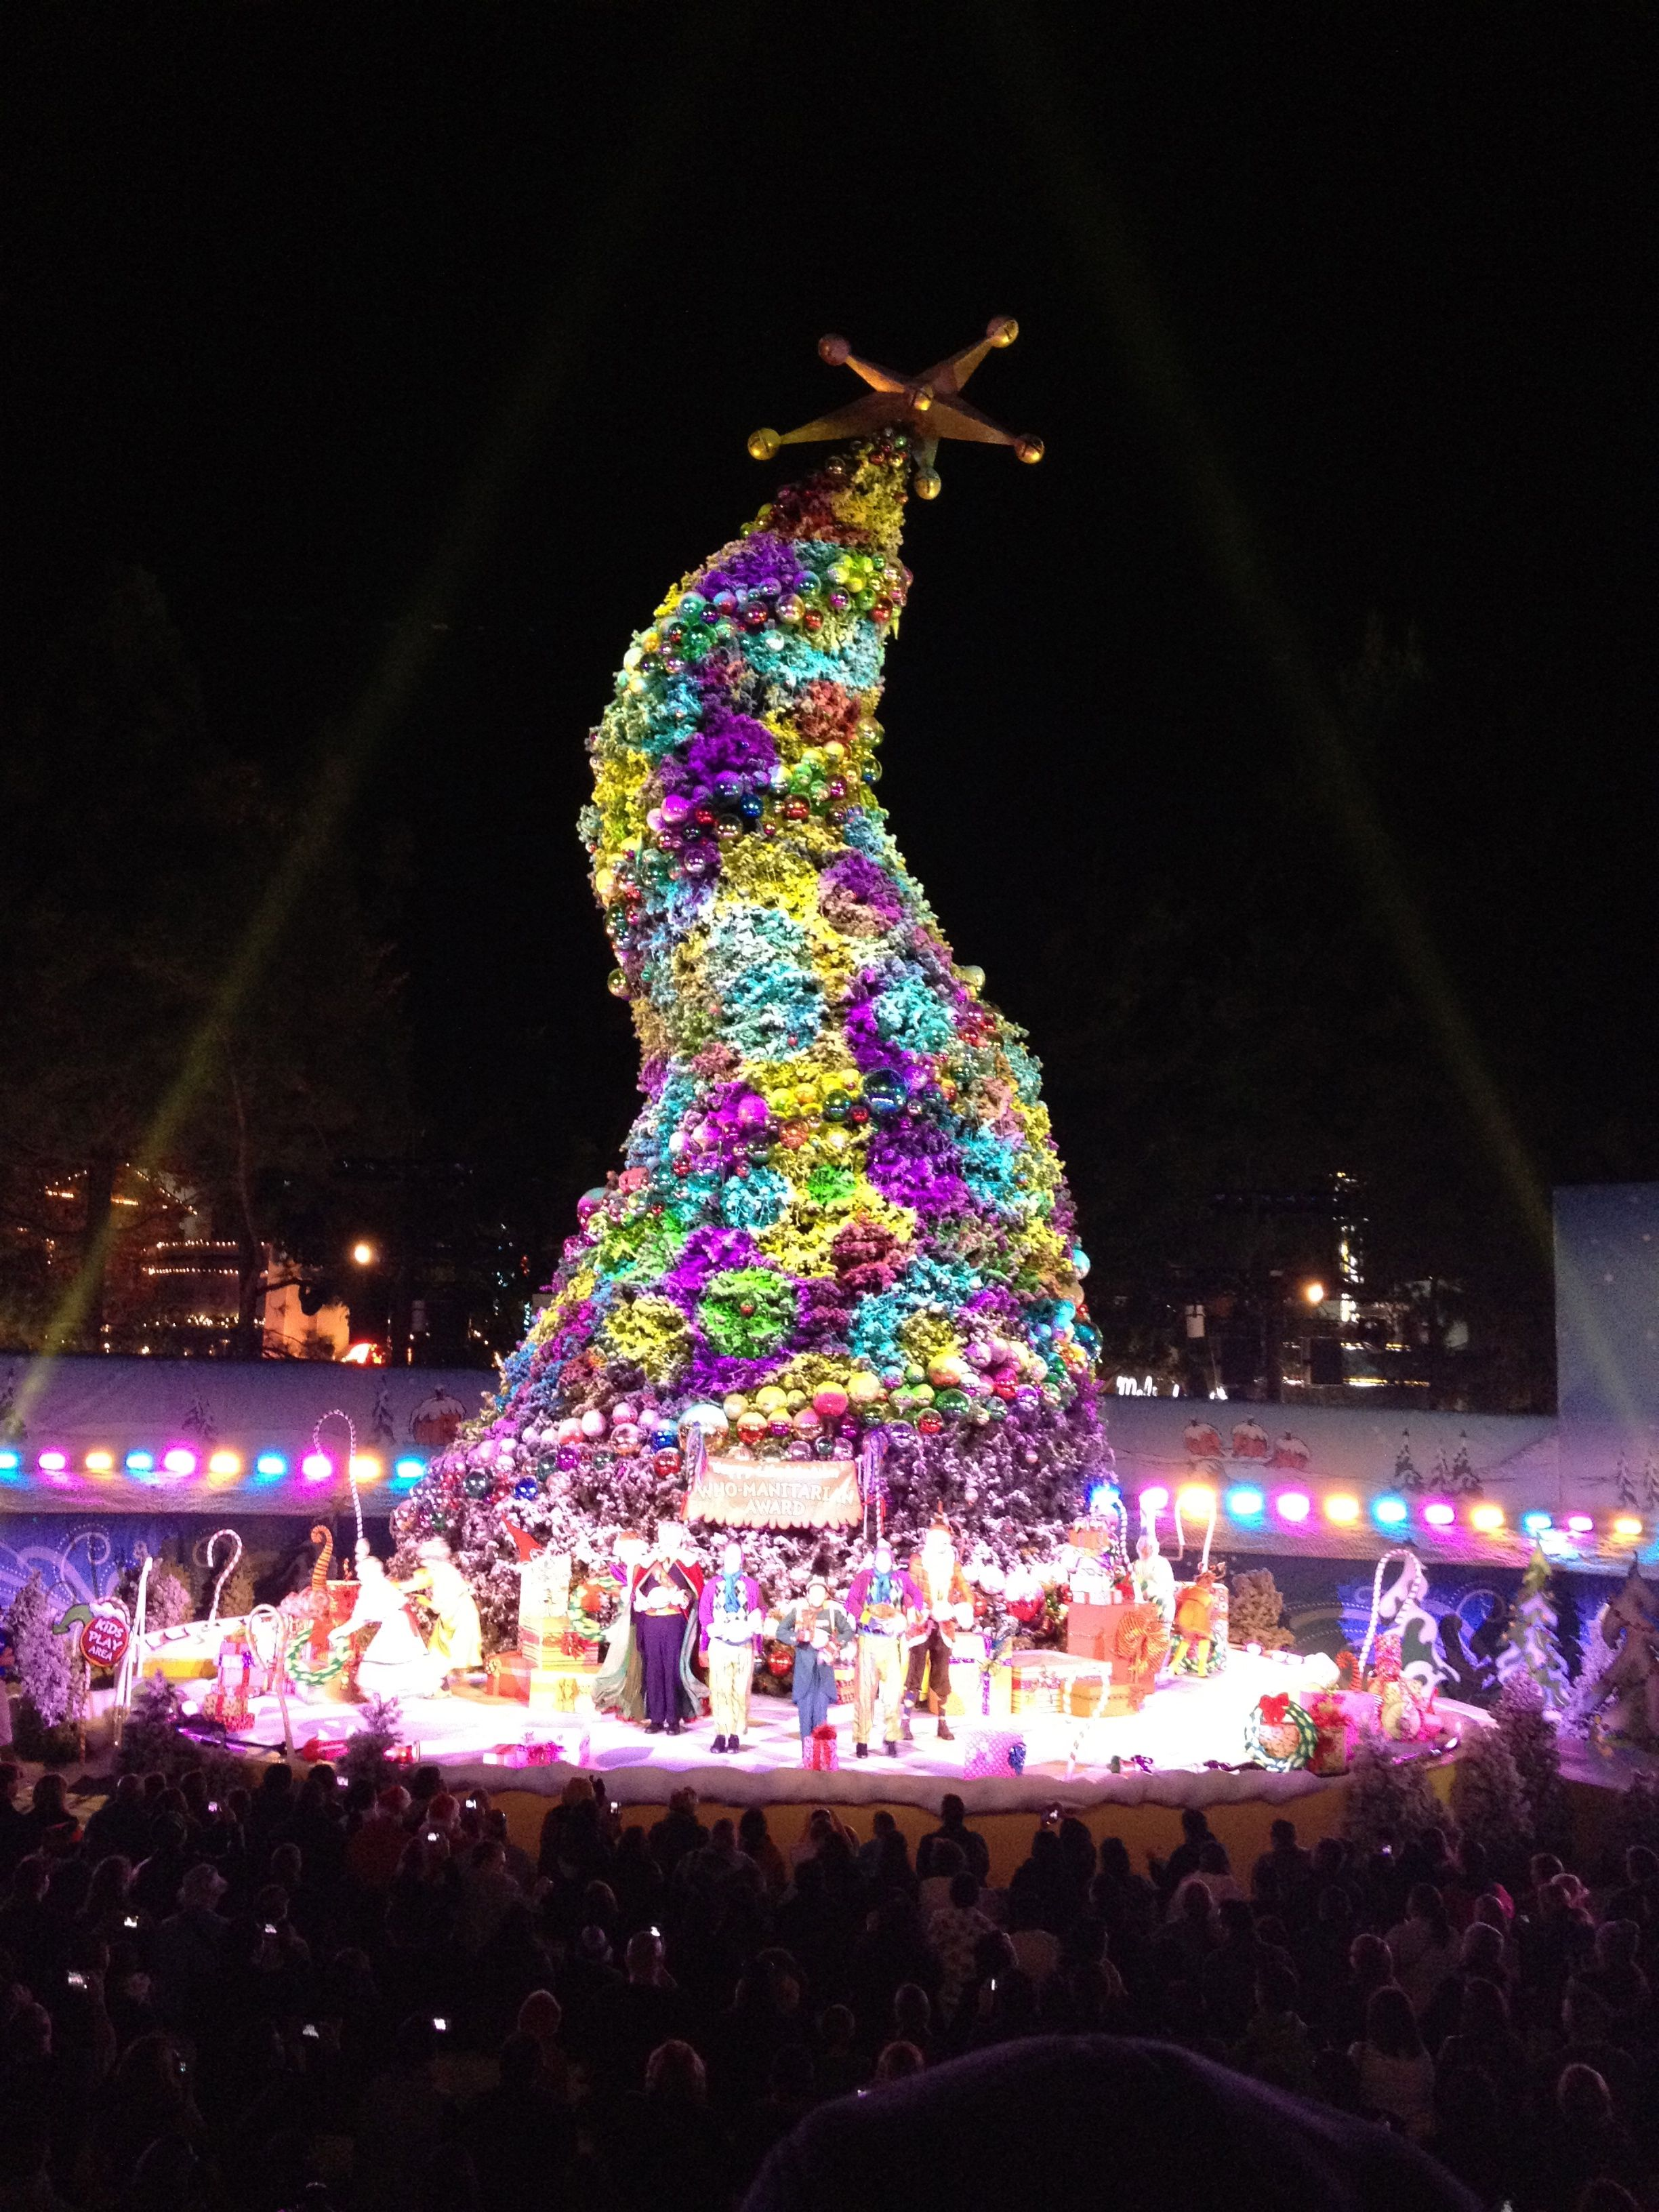 The Whoville Tree, Grinchmas | Whoville christmas